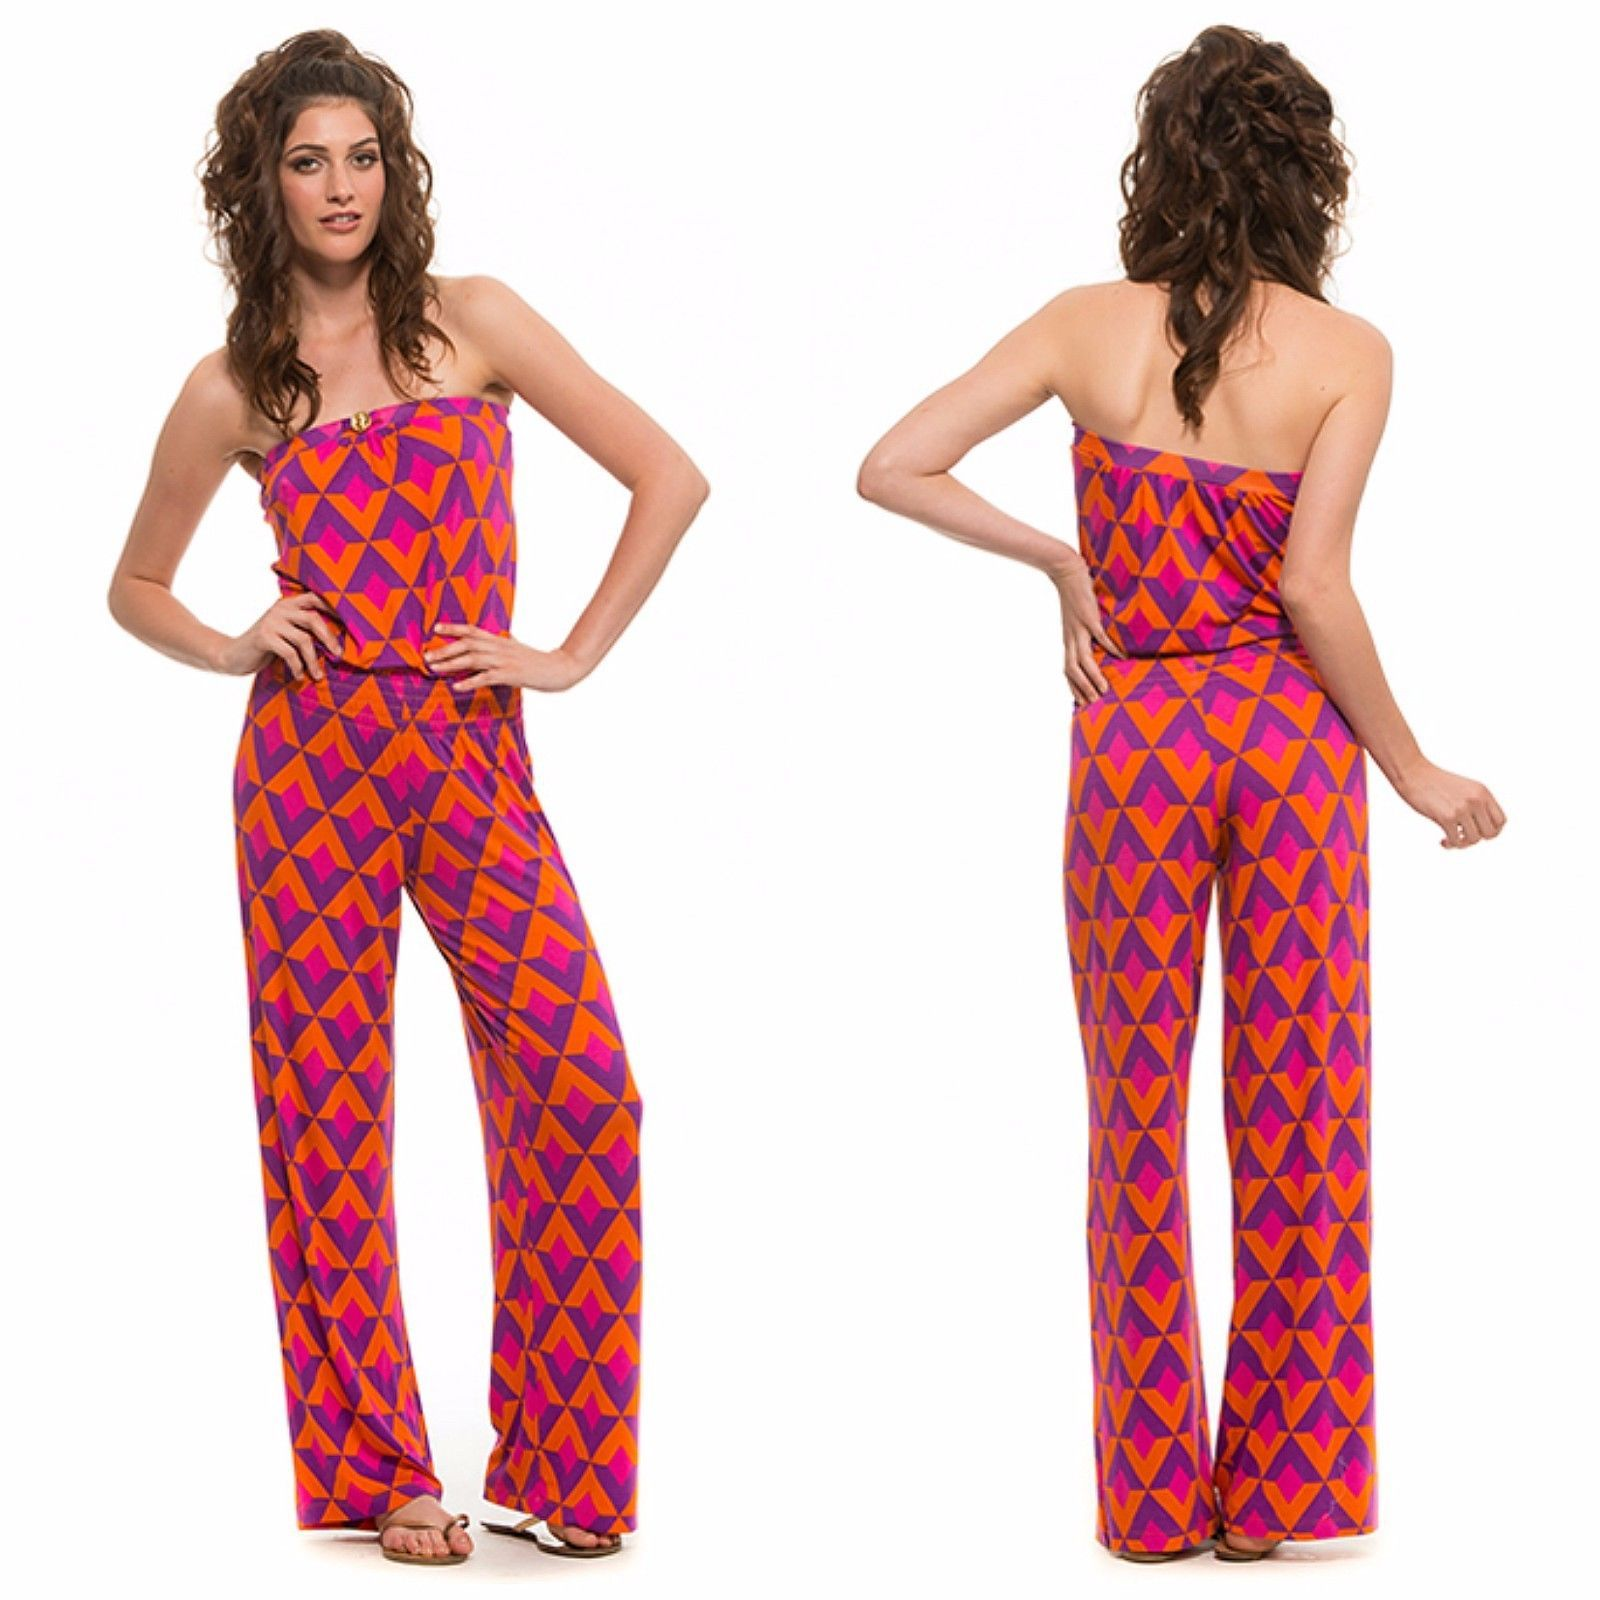 438af97134 Macbeth Collection Nina Mulberry Jumpsuit Strapless Flare Leg Fuchsia XS S  M